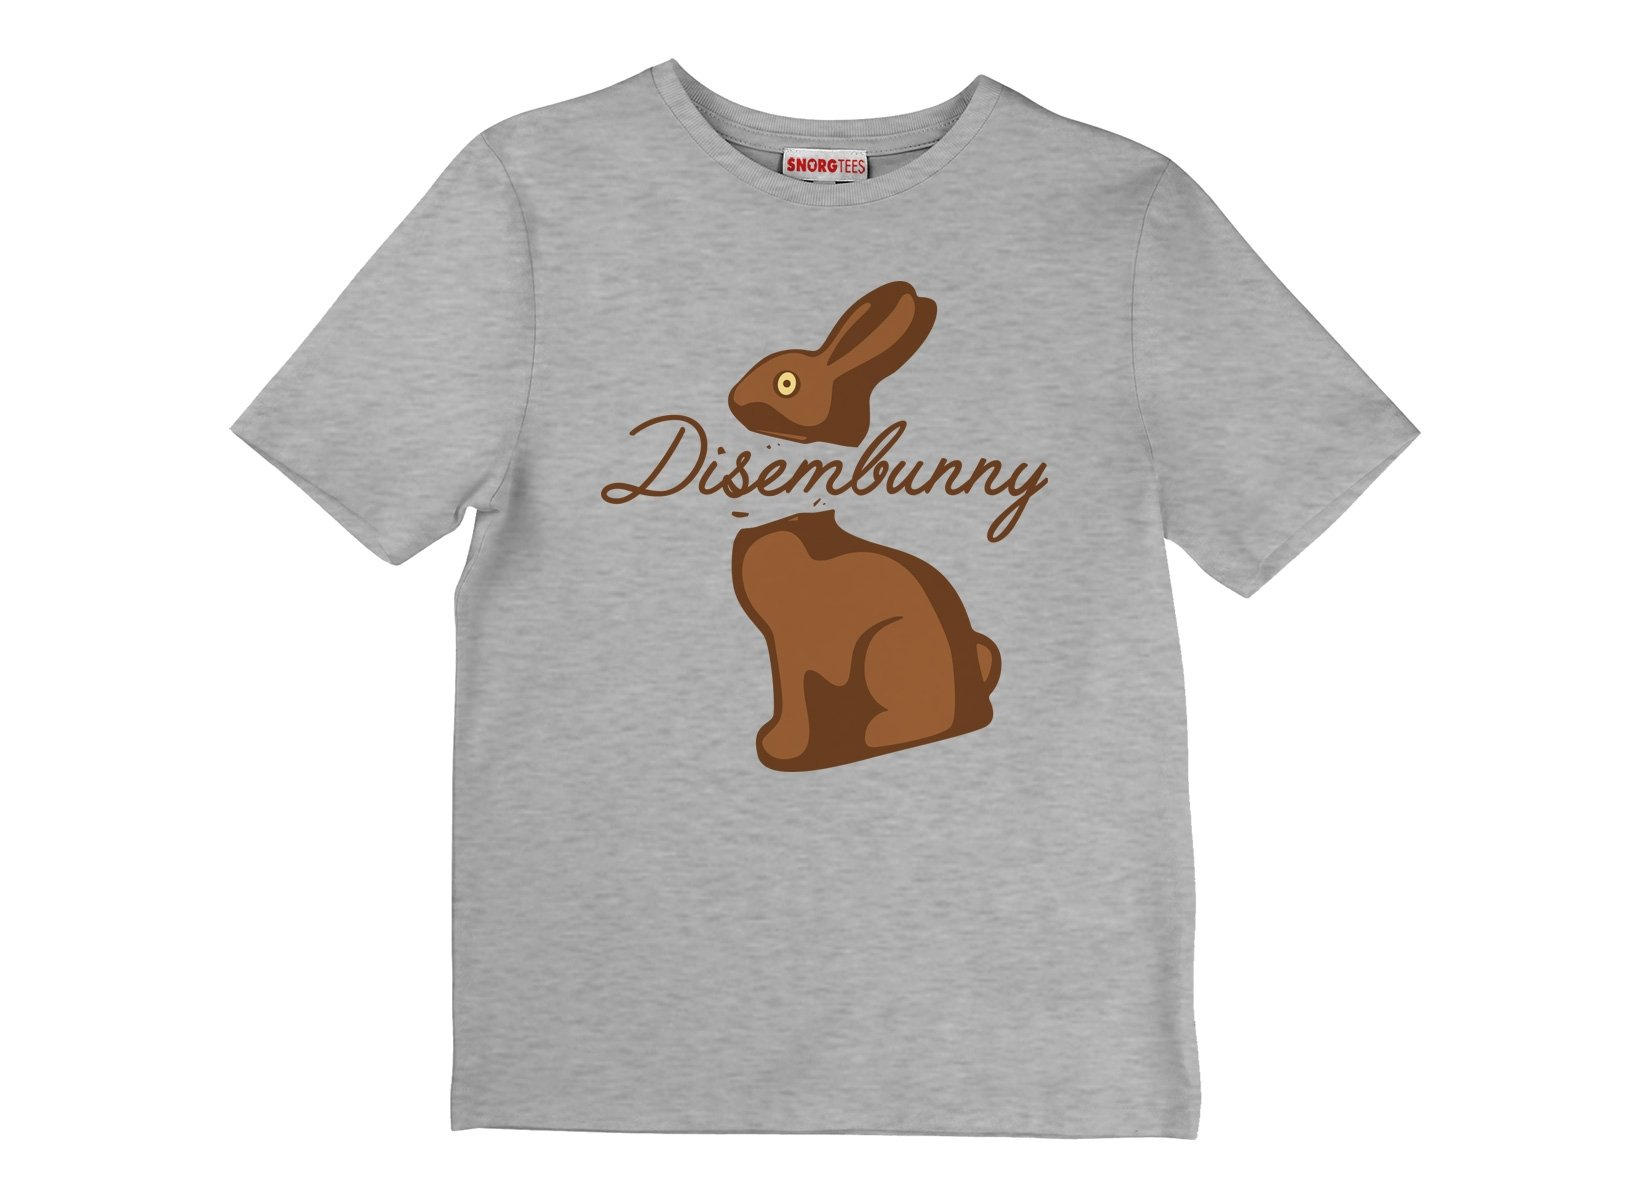 Disembunny on Kids T-Shirt